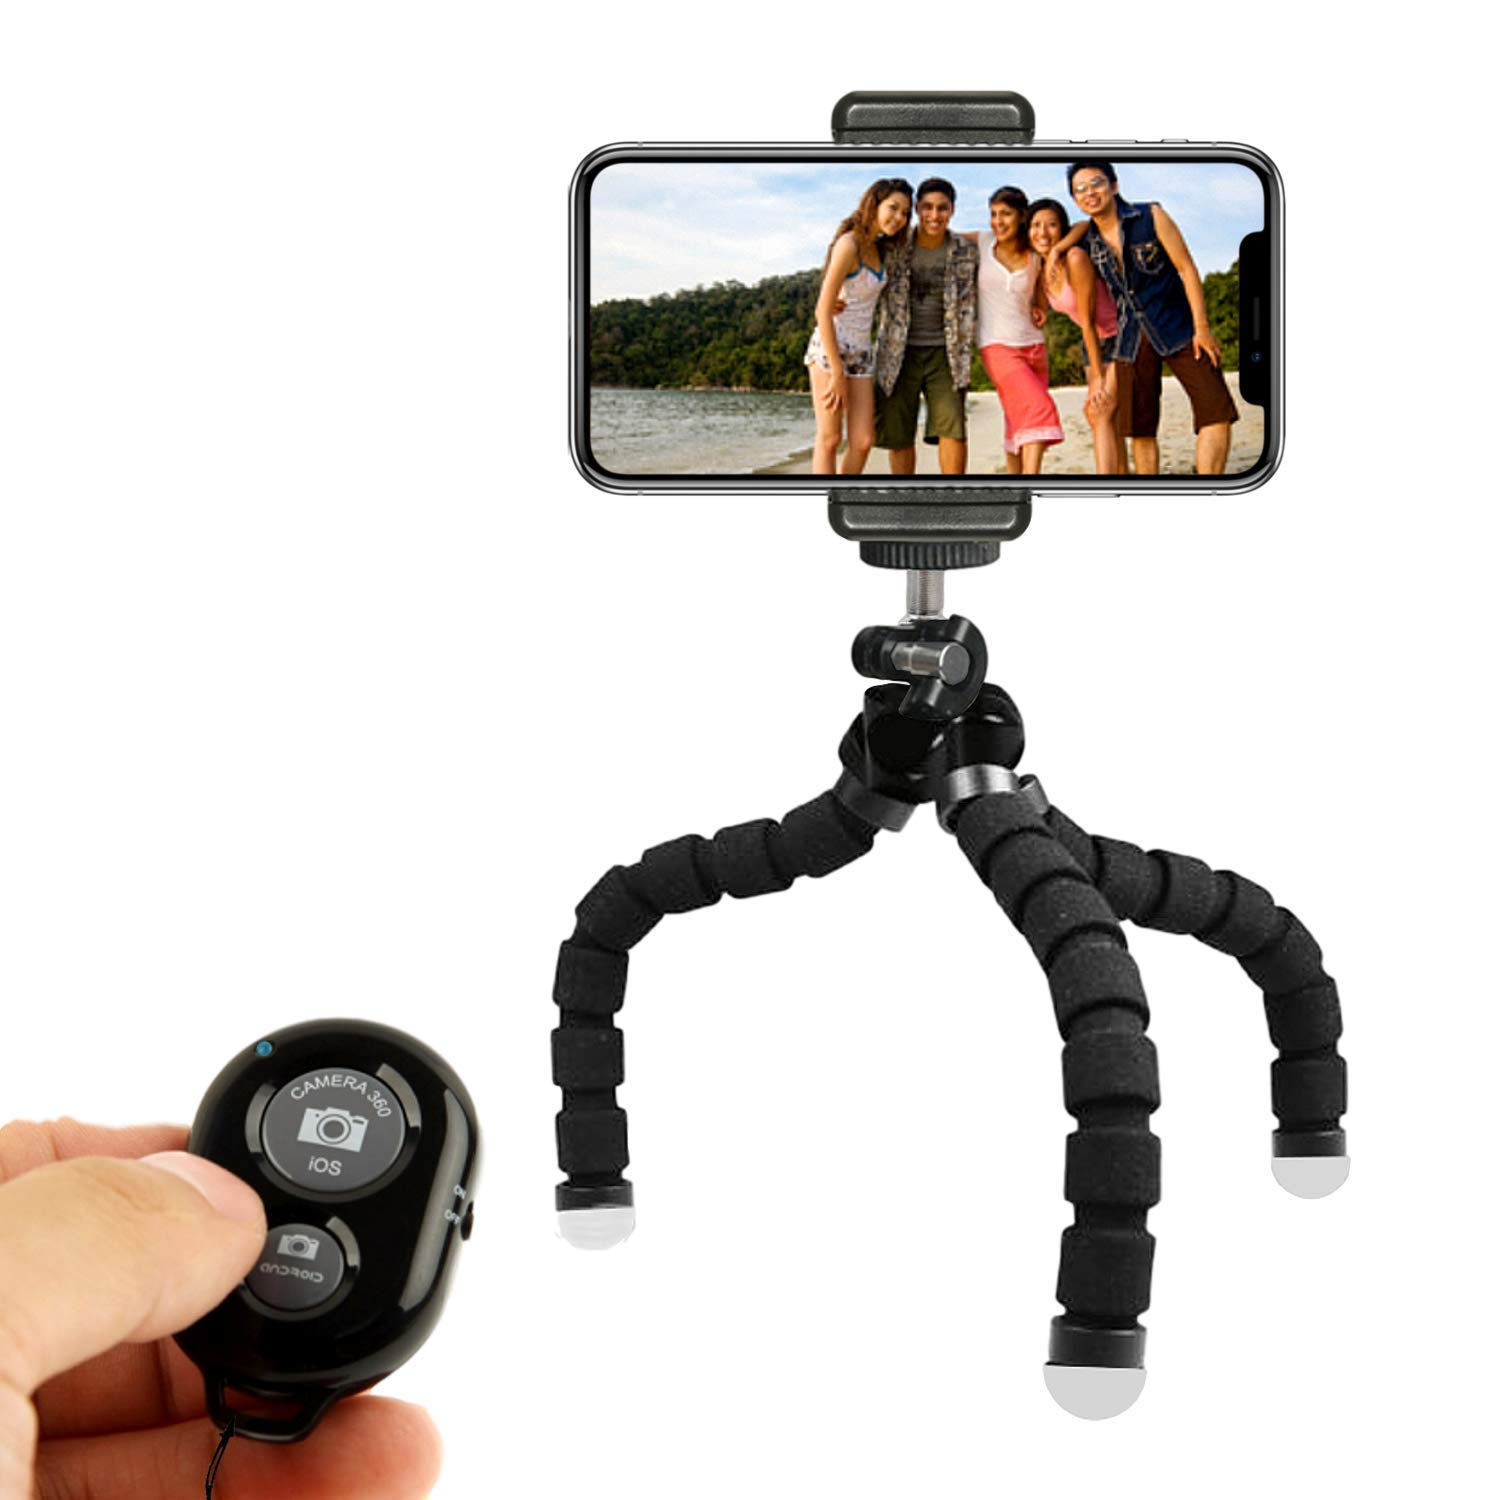 This is a phone tripod with tree banding and flexible legs. Allows also remote control with a small round controller.